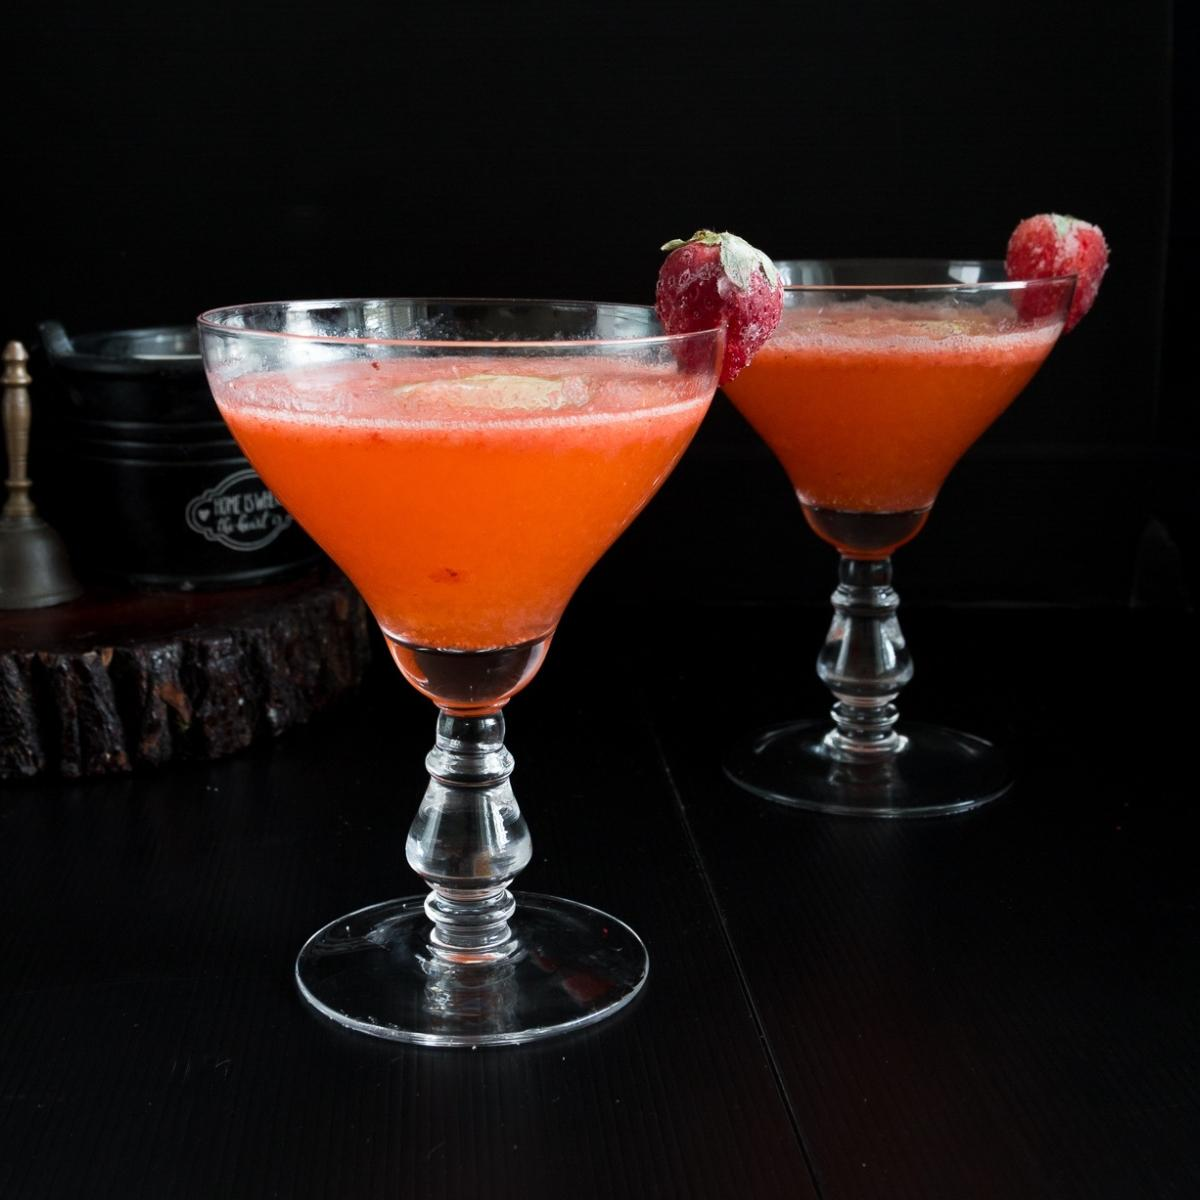 A glass of Strawberry vodka cocktail.